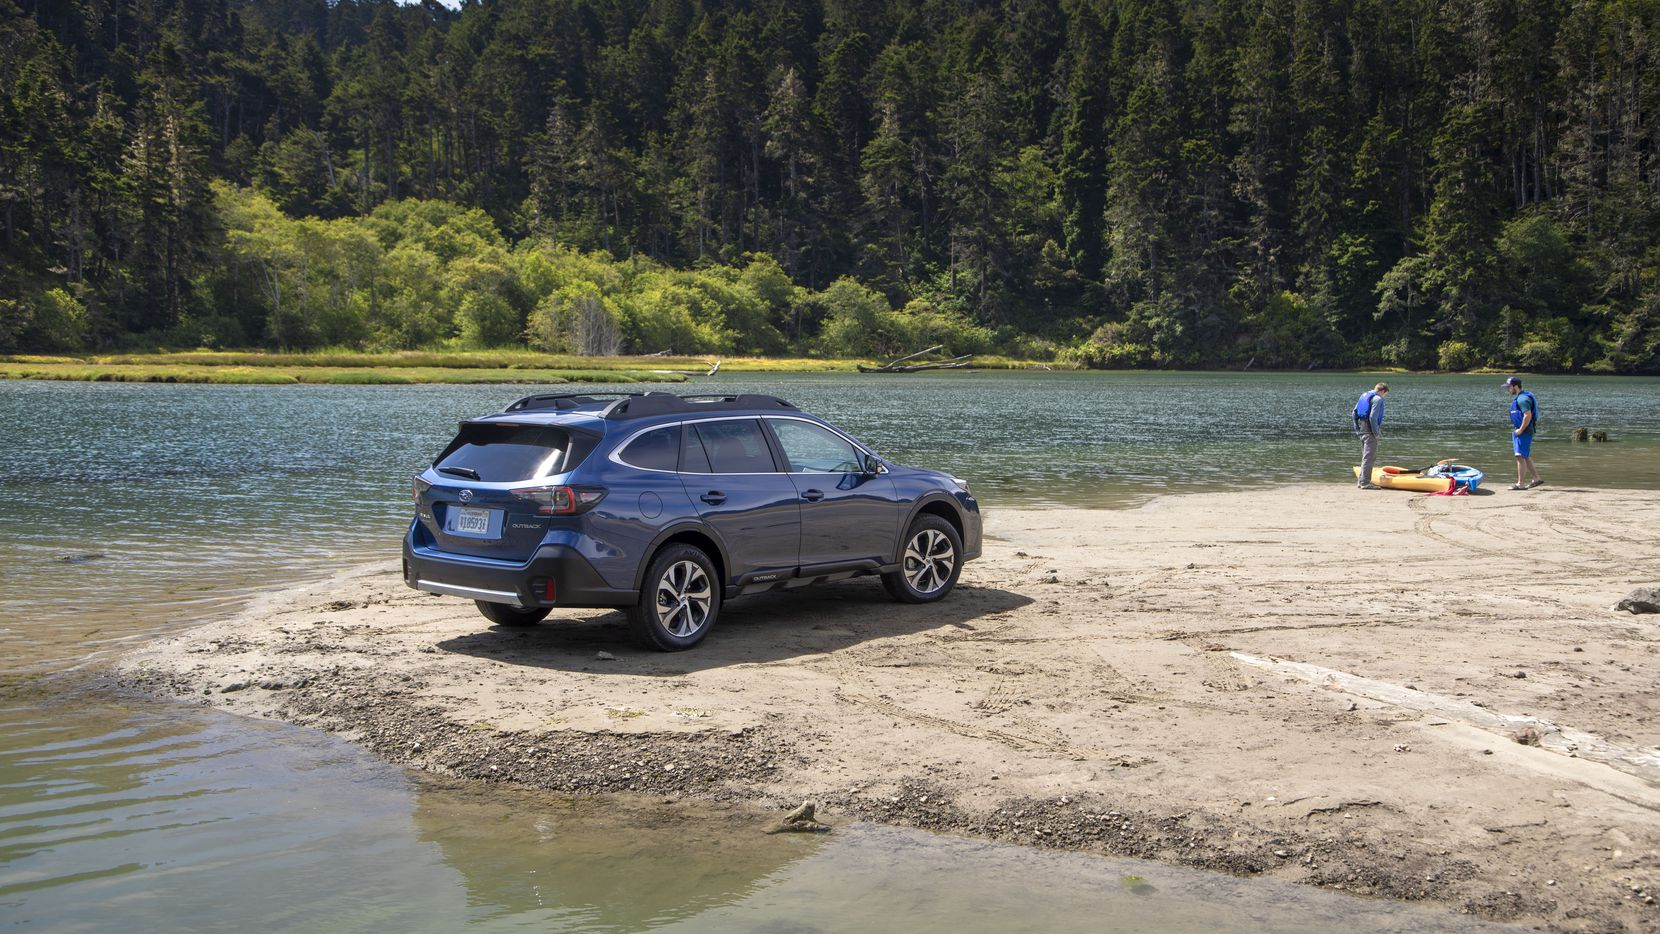 The 2020 Subaru Outback is a family hauling staple, even